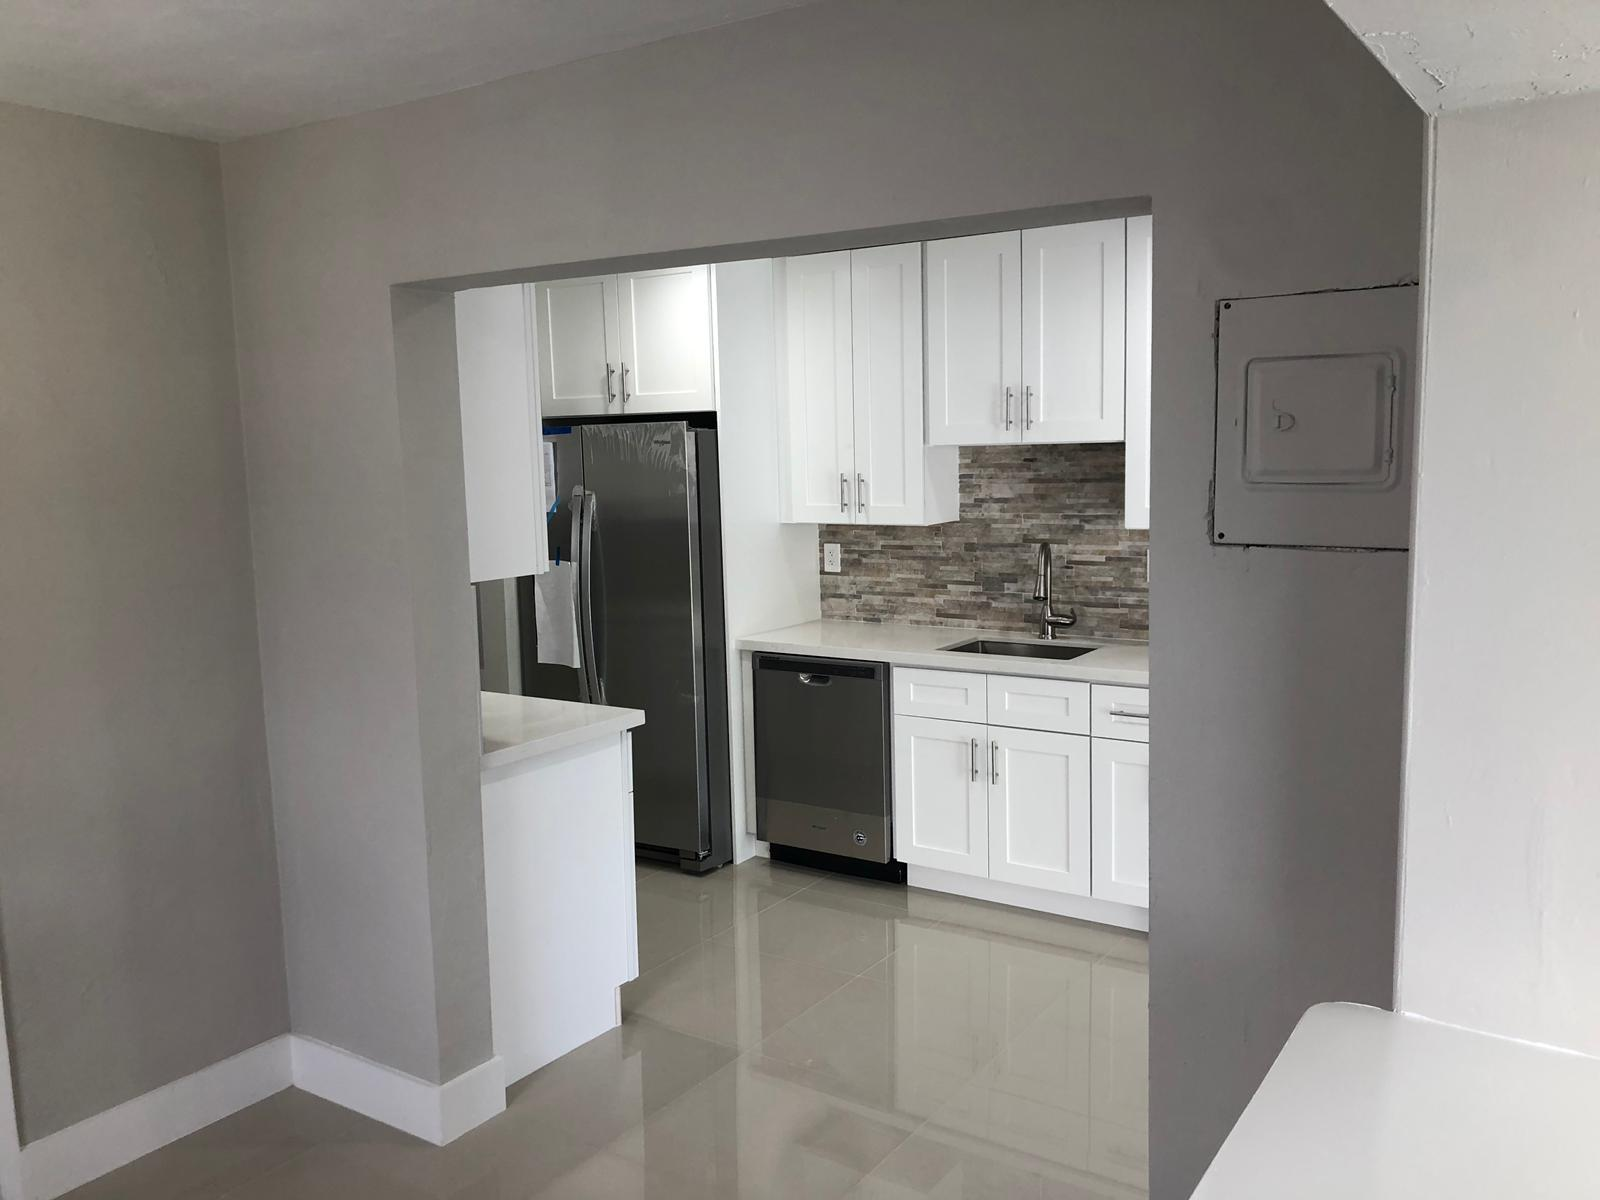 210 NW 55TH ST (1)